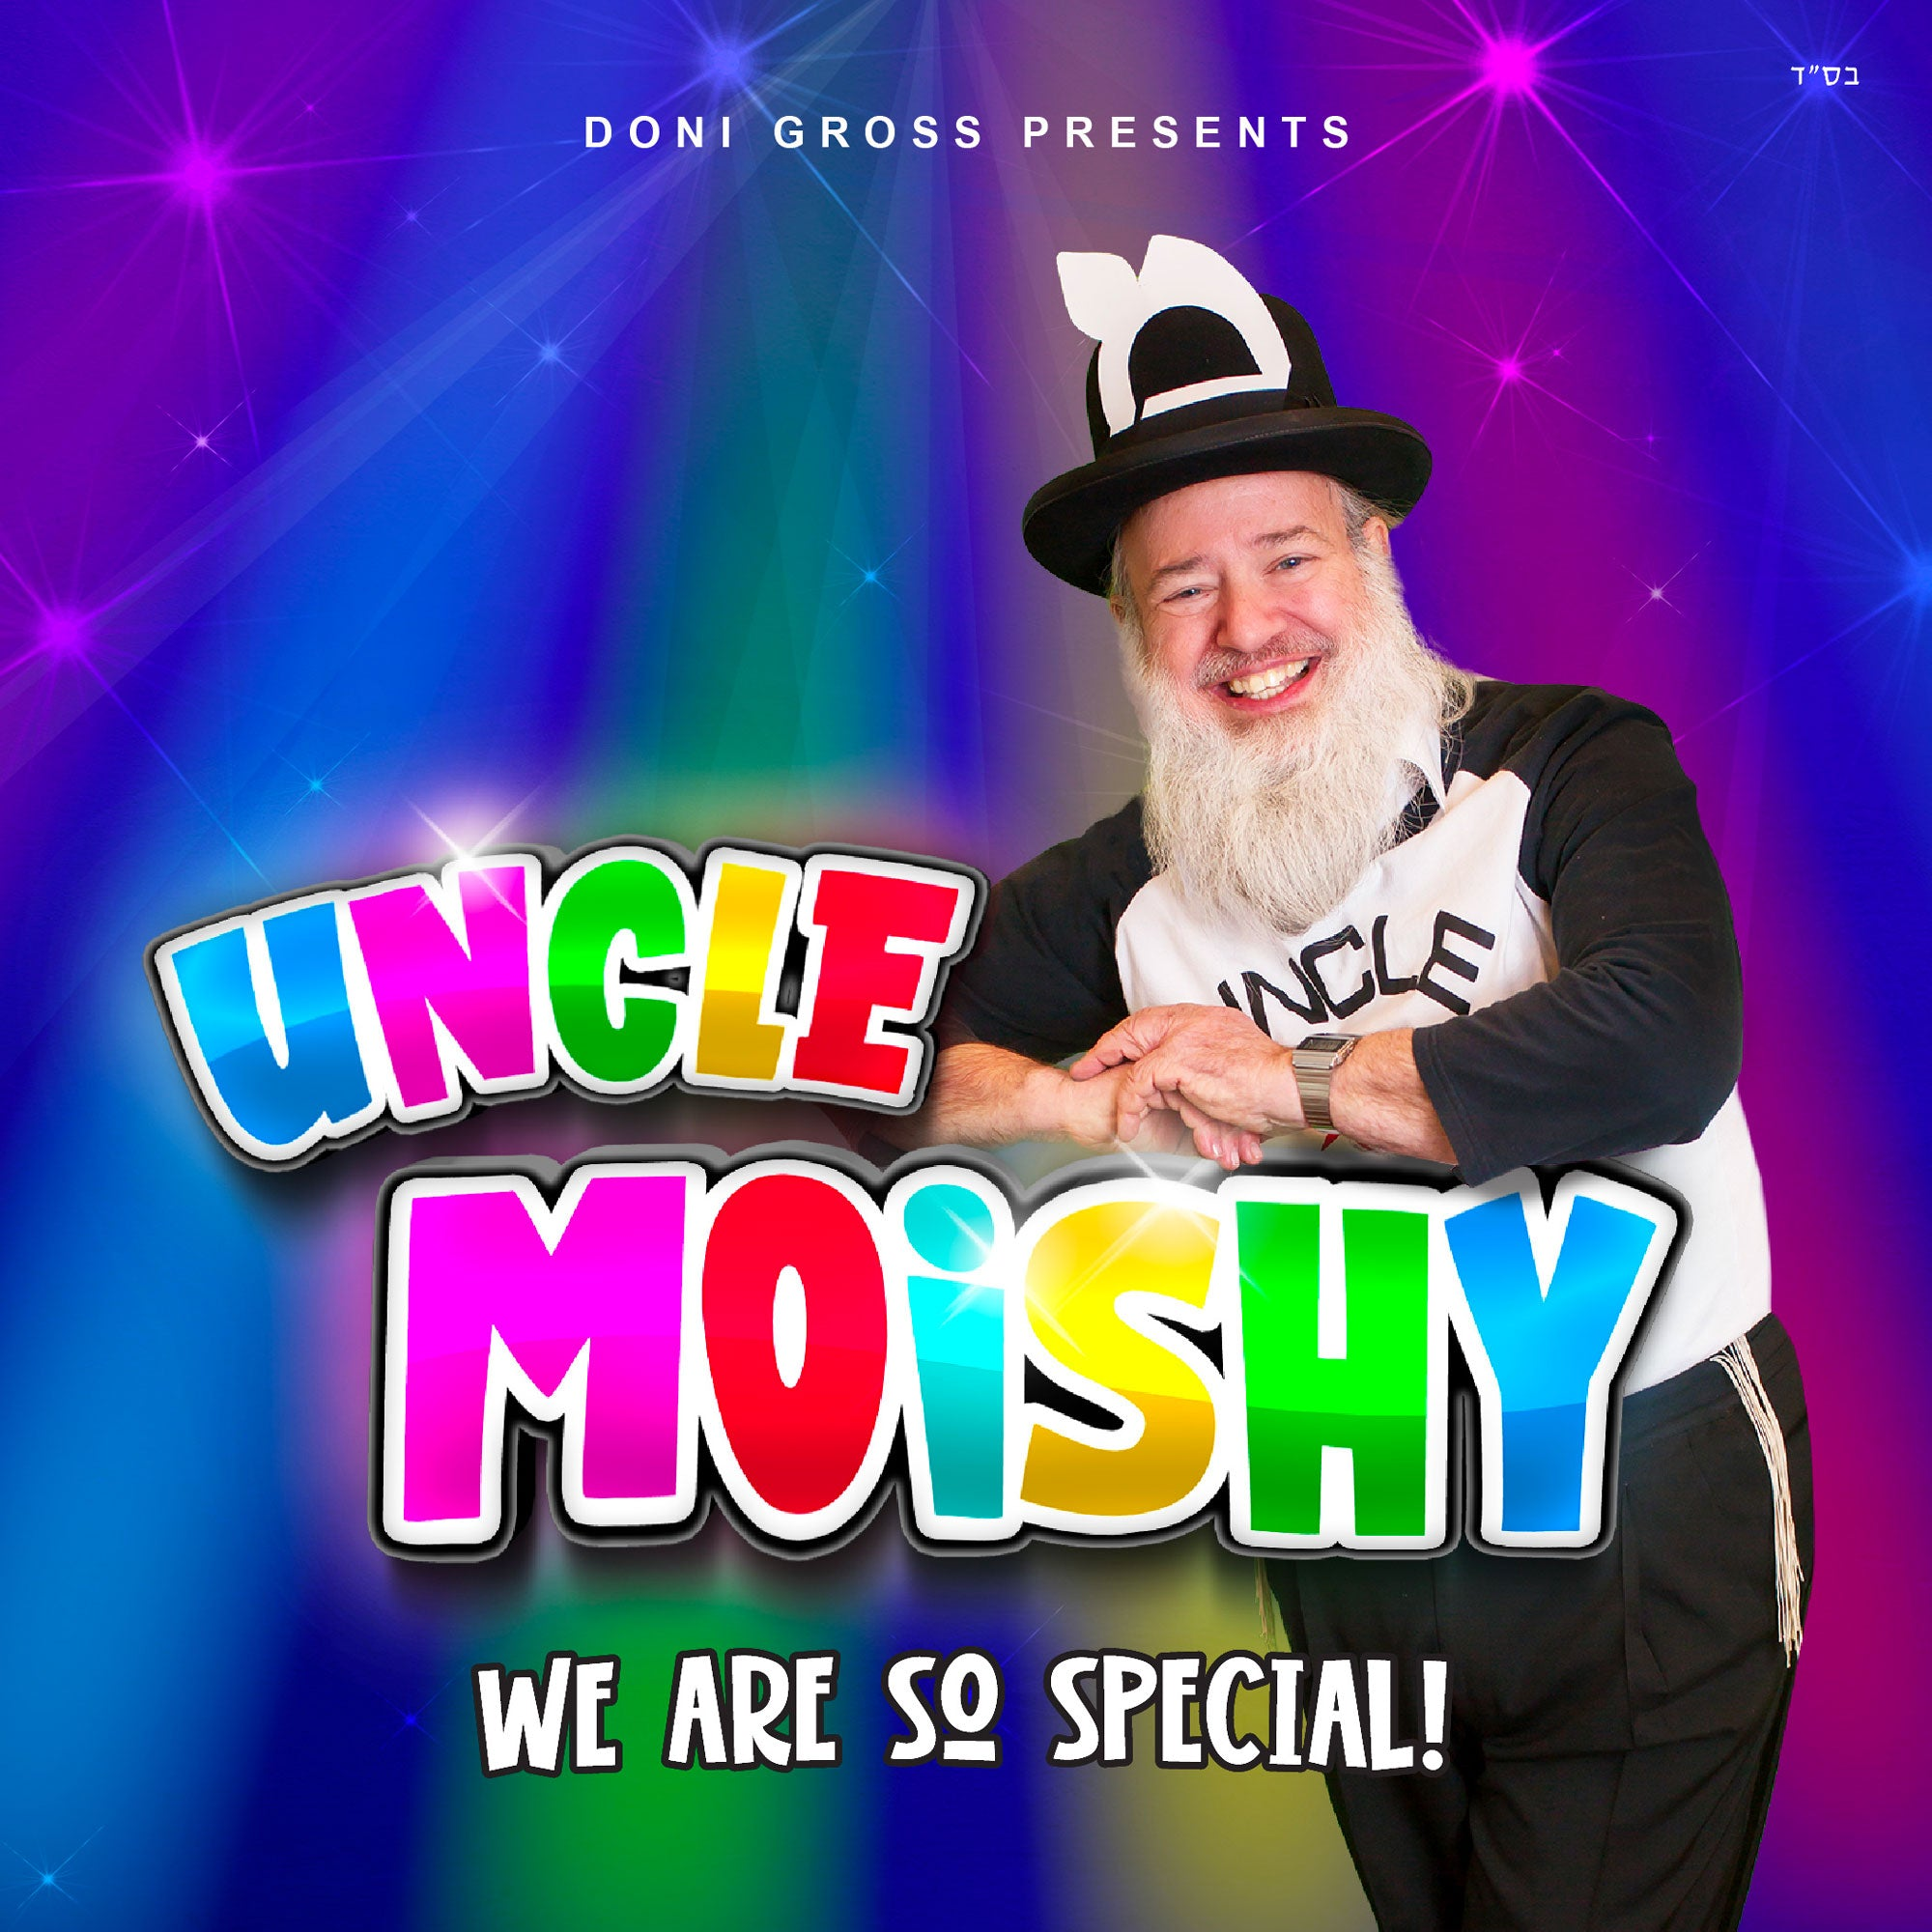 Uncle Moishy - We are so Special!